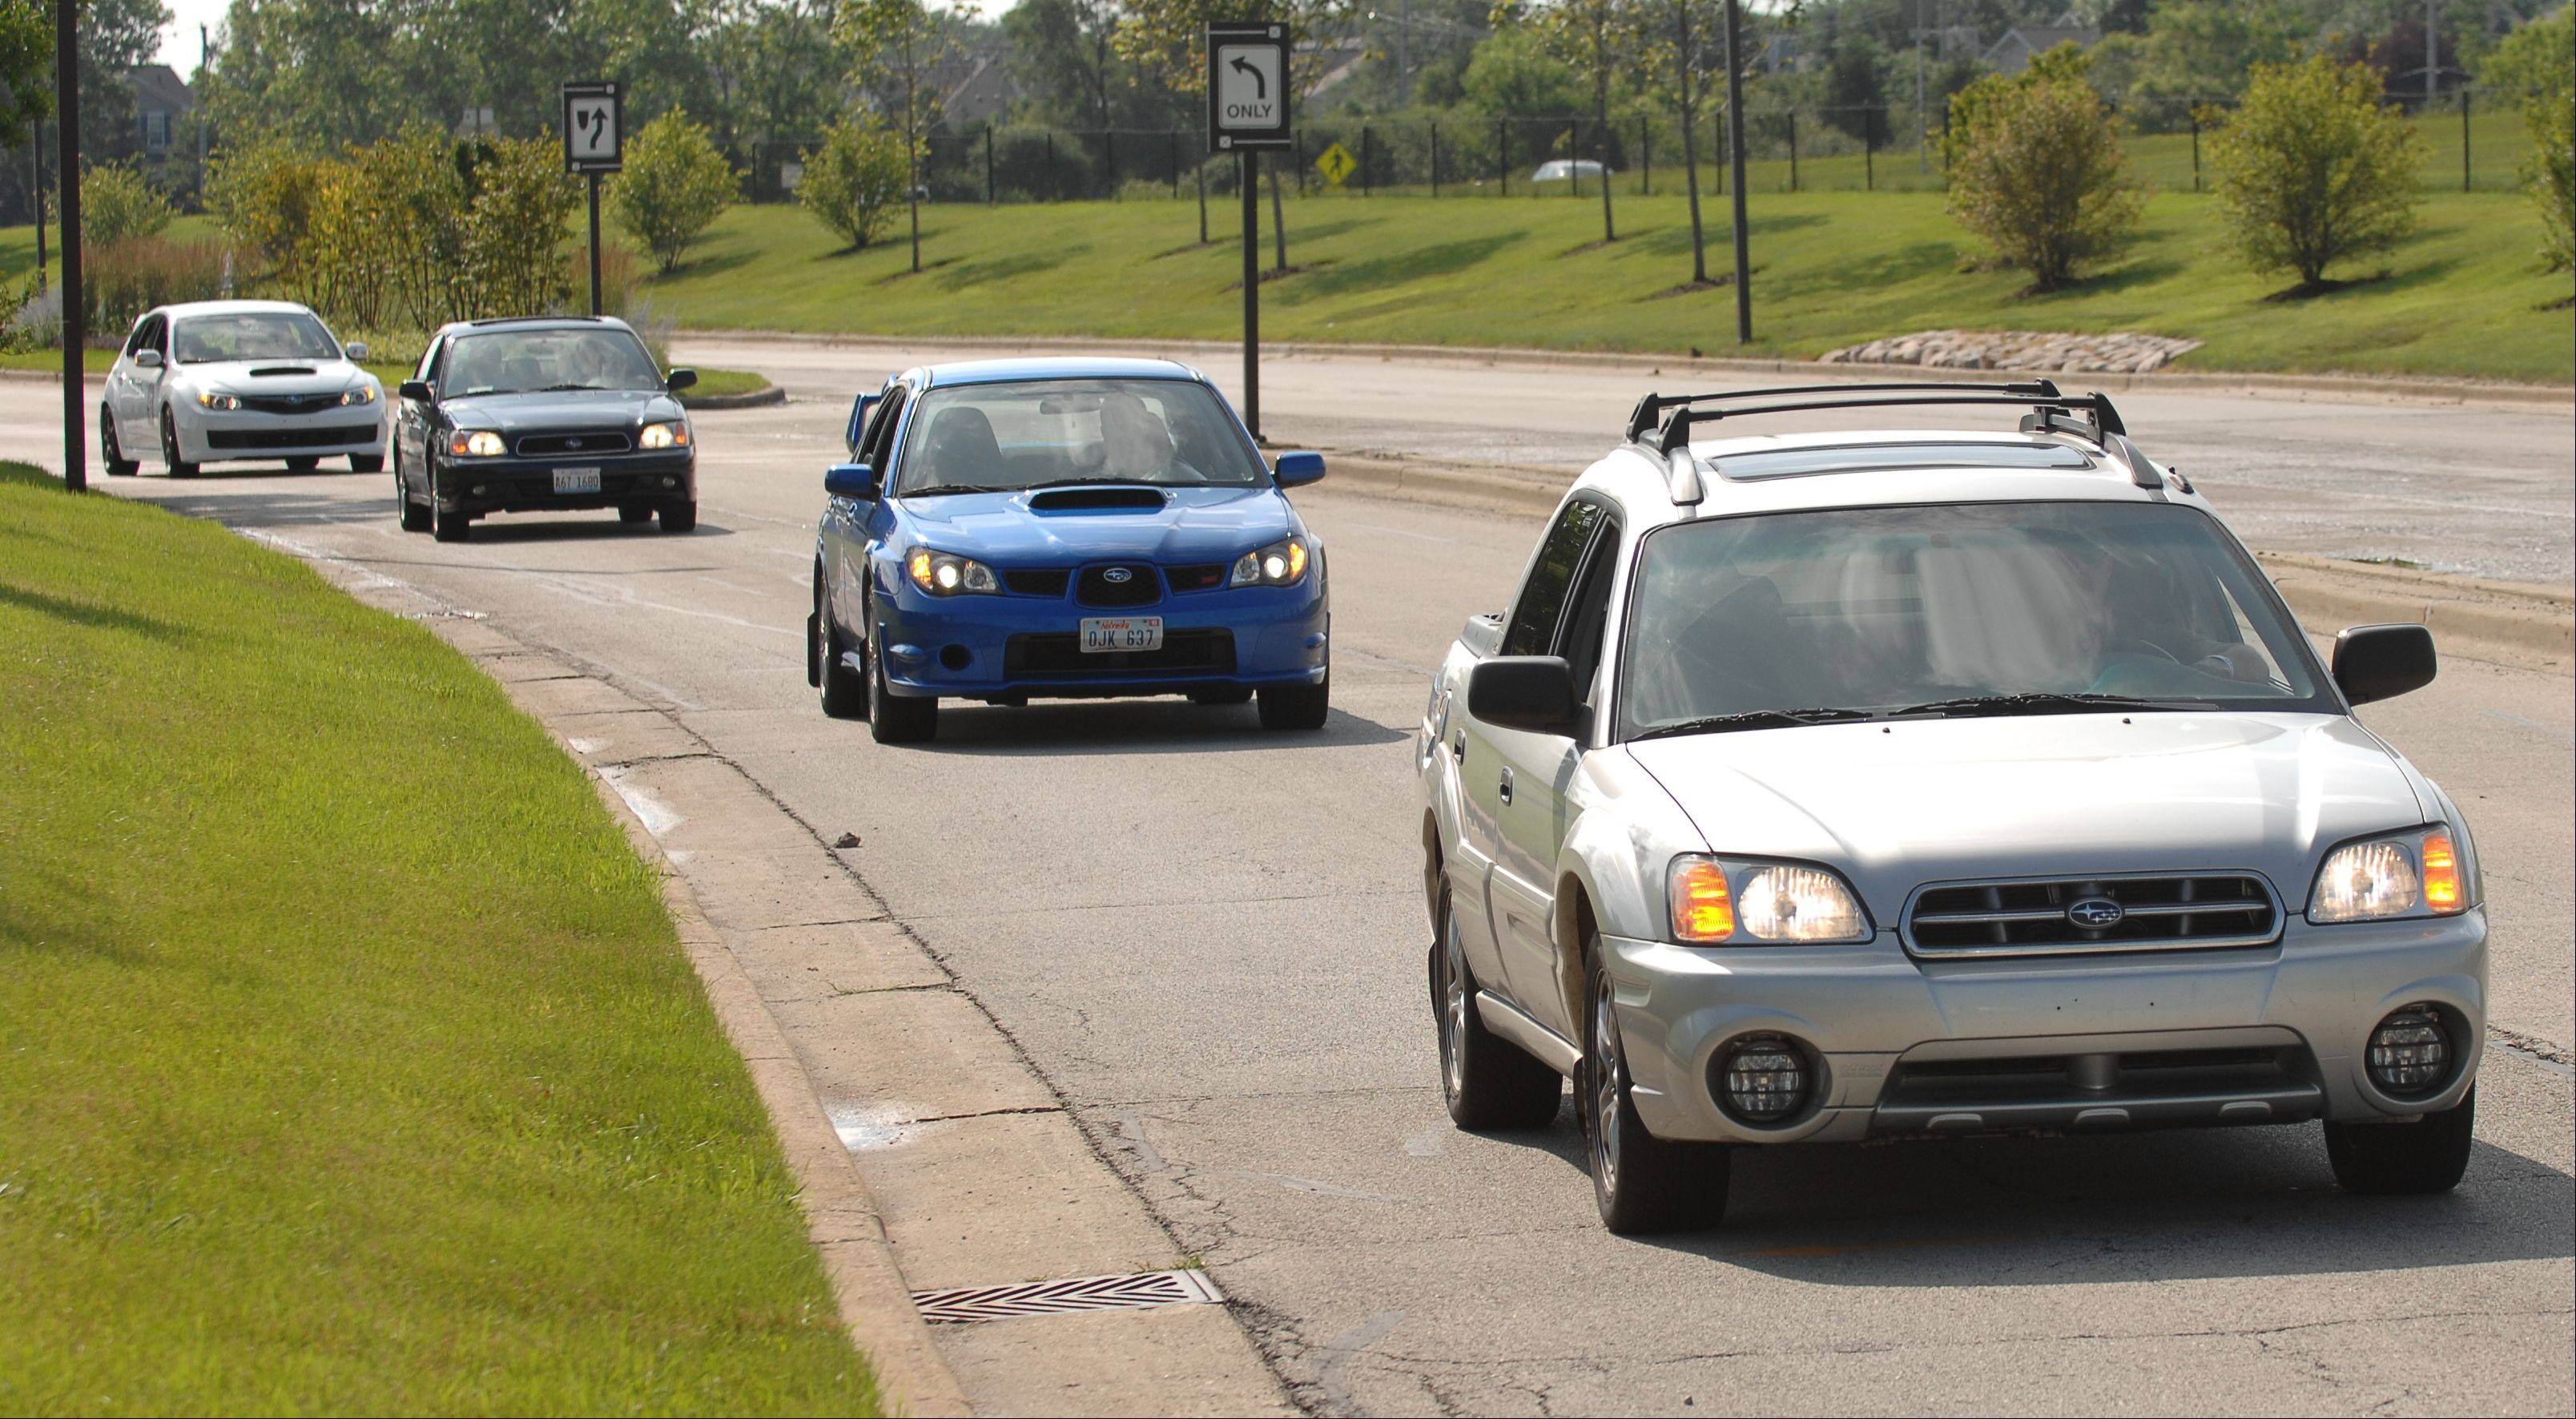 Itasca hopes to break its 2009 world record of 339 Subarus in a parade Saturday morning as part of the village�s Itasca Fest activities.